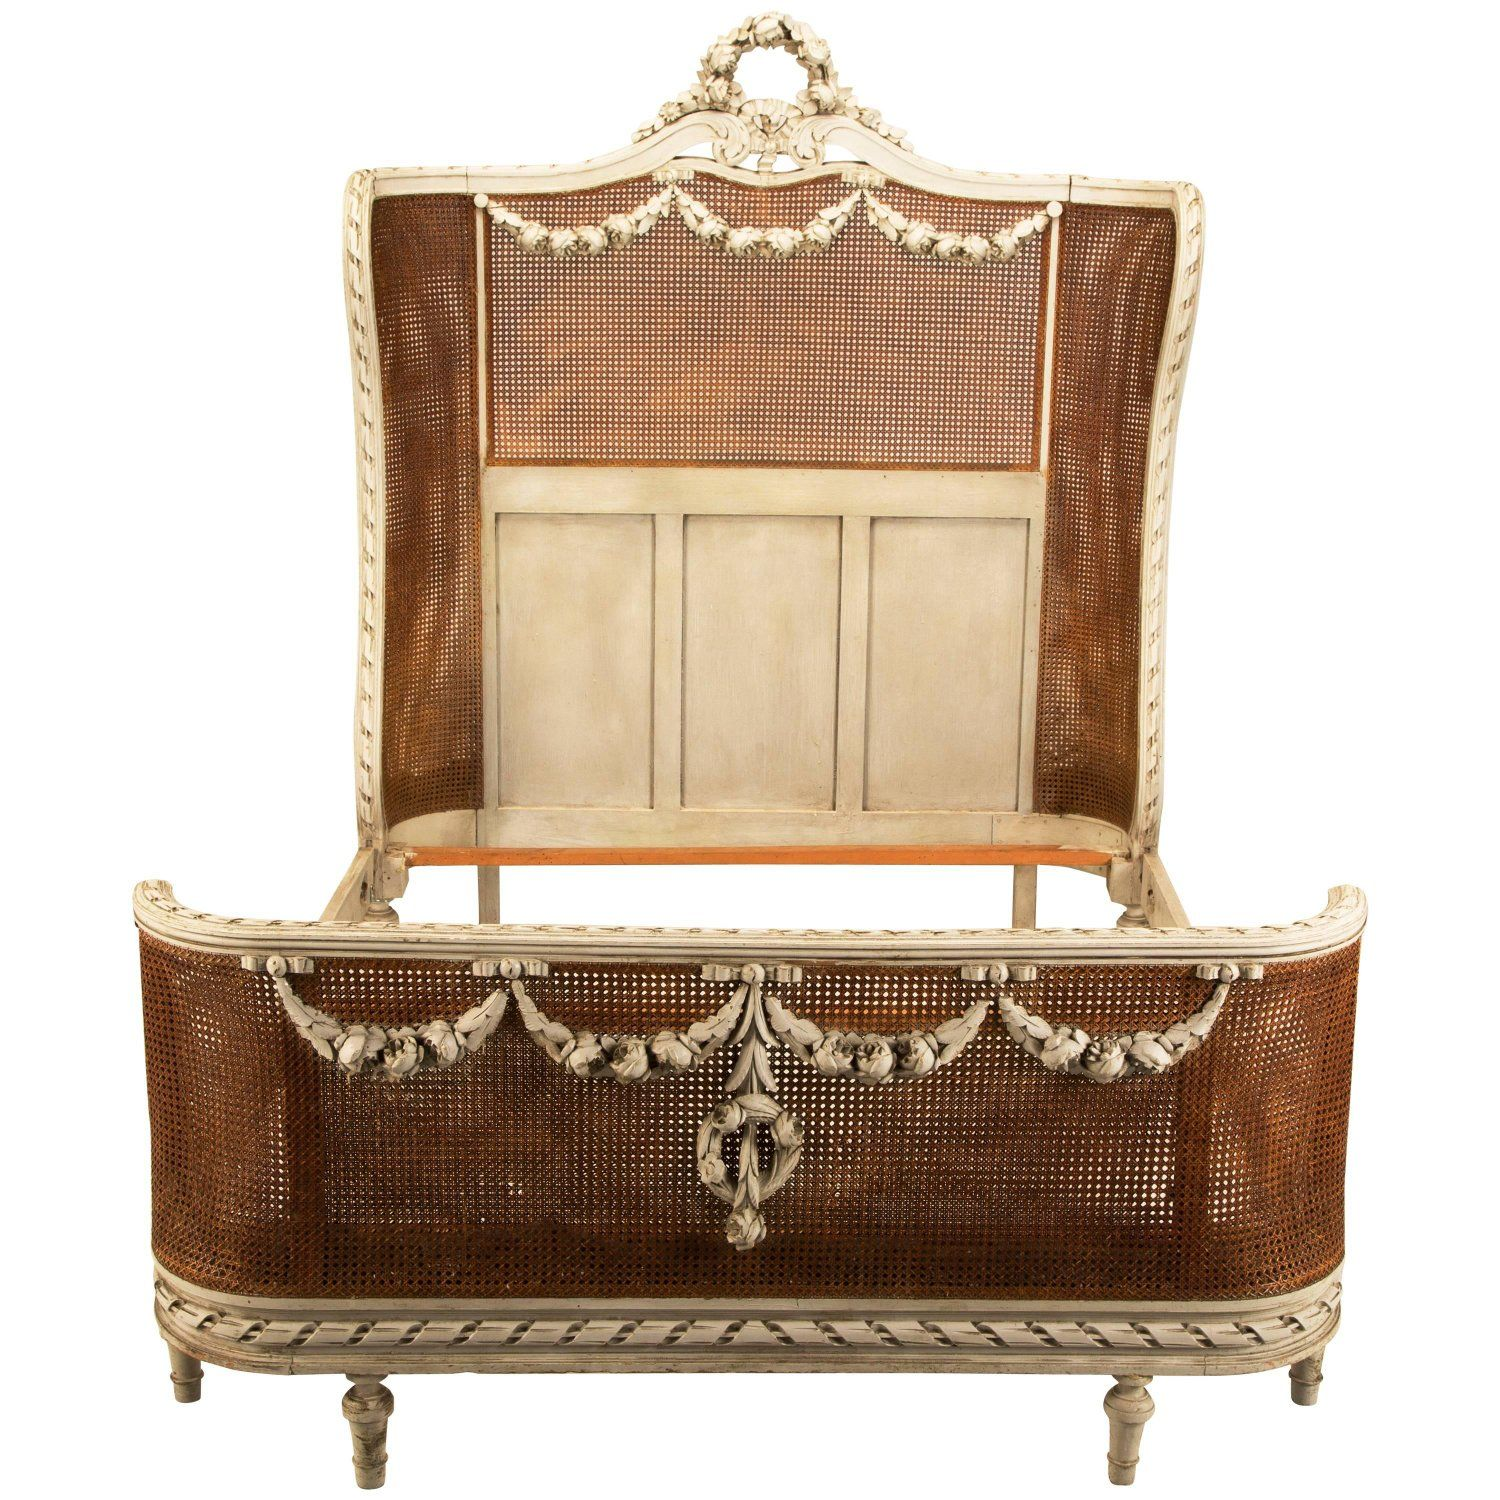 French Louis XVI Style Antique Original Paint and Cane Bed